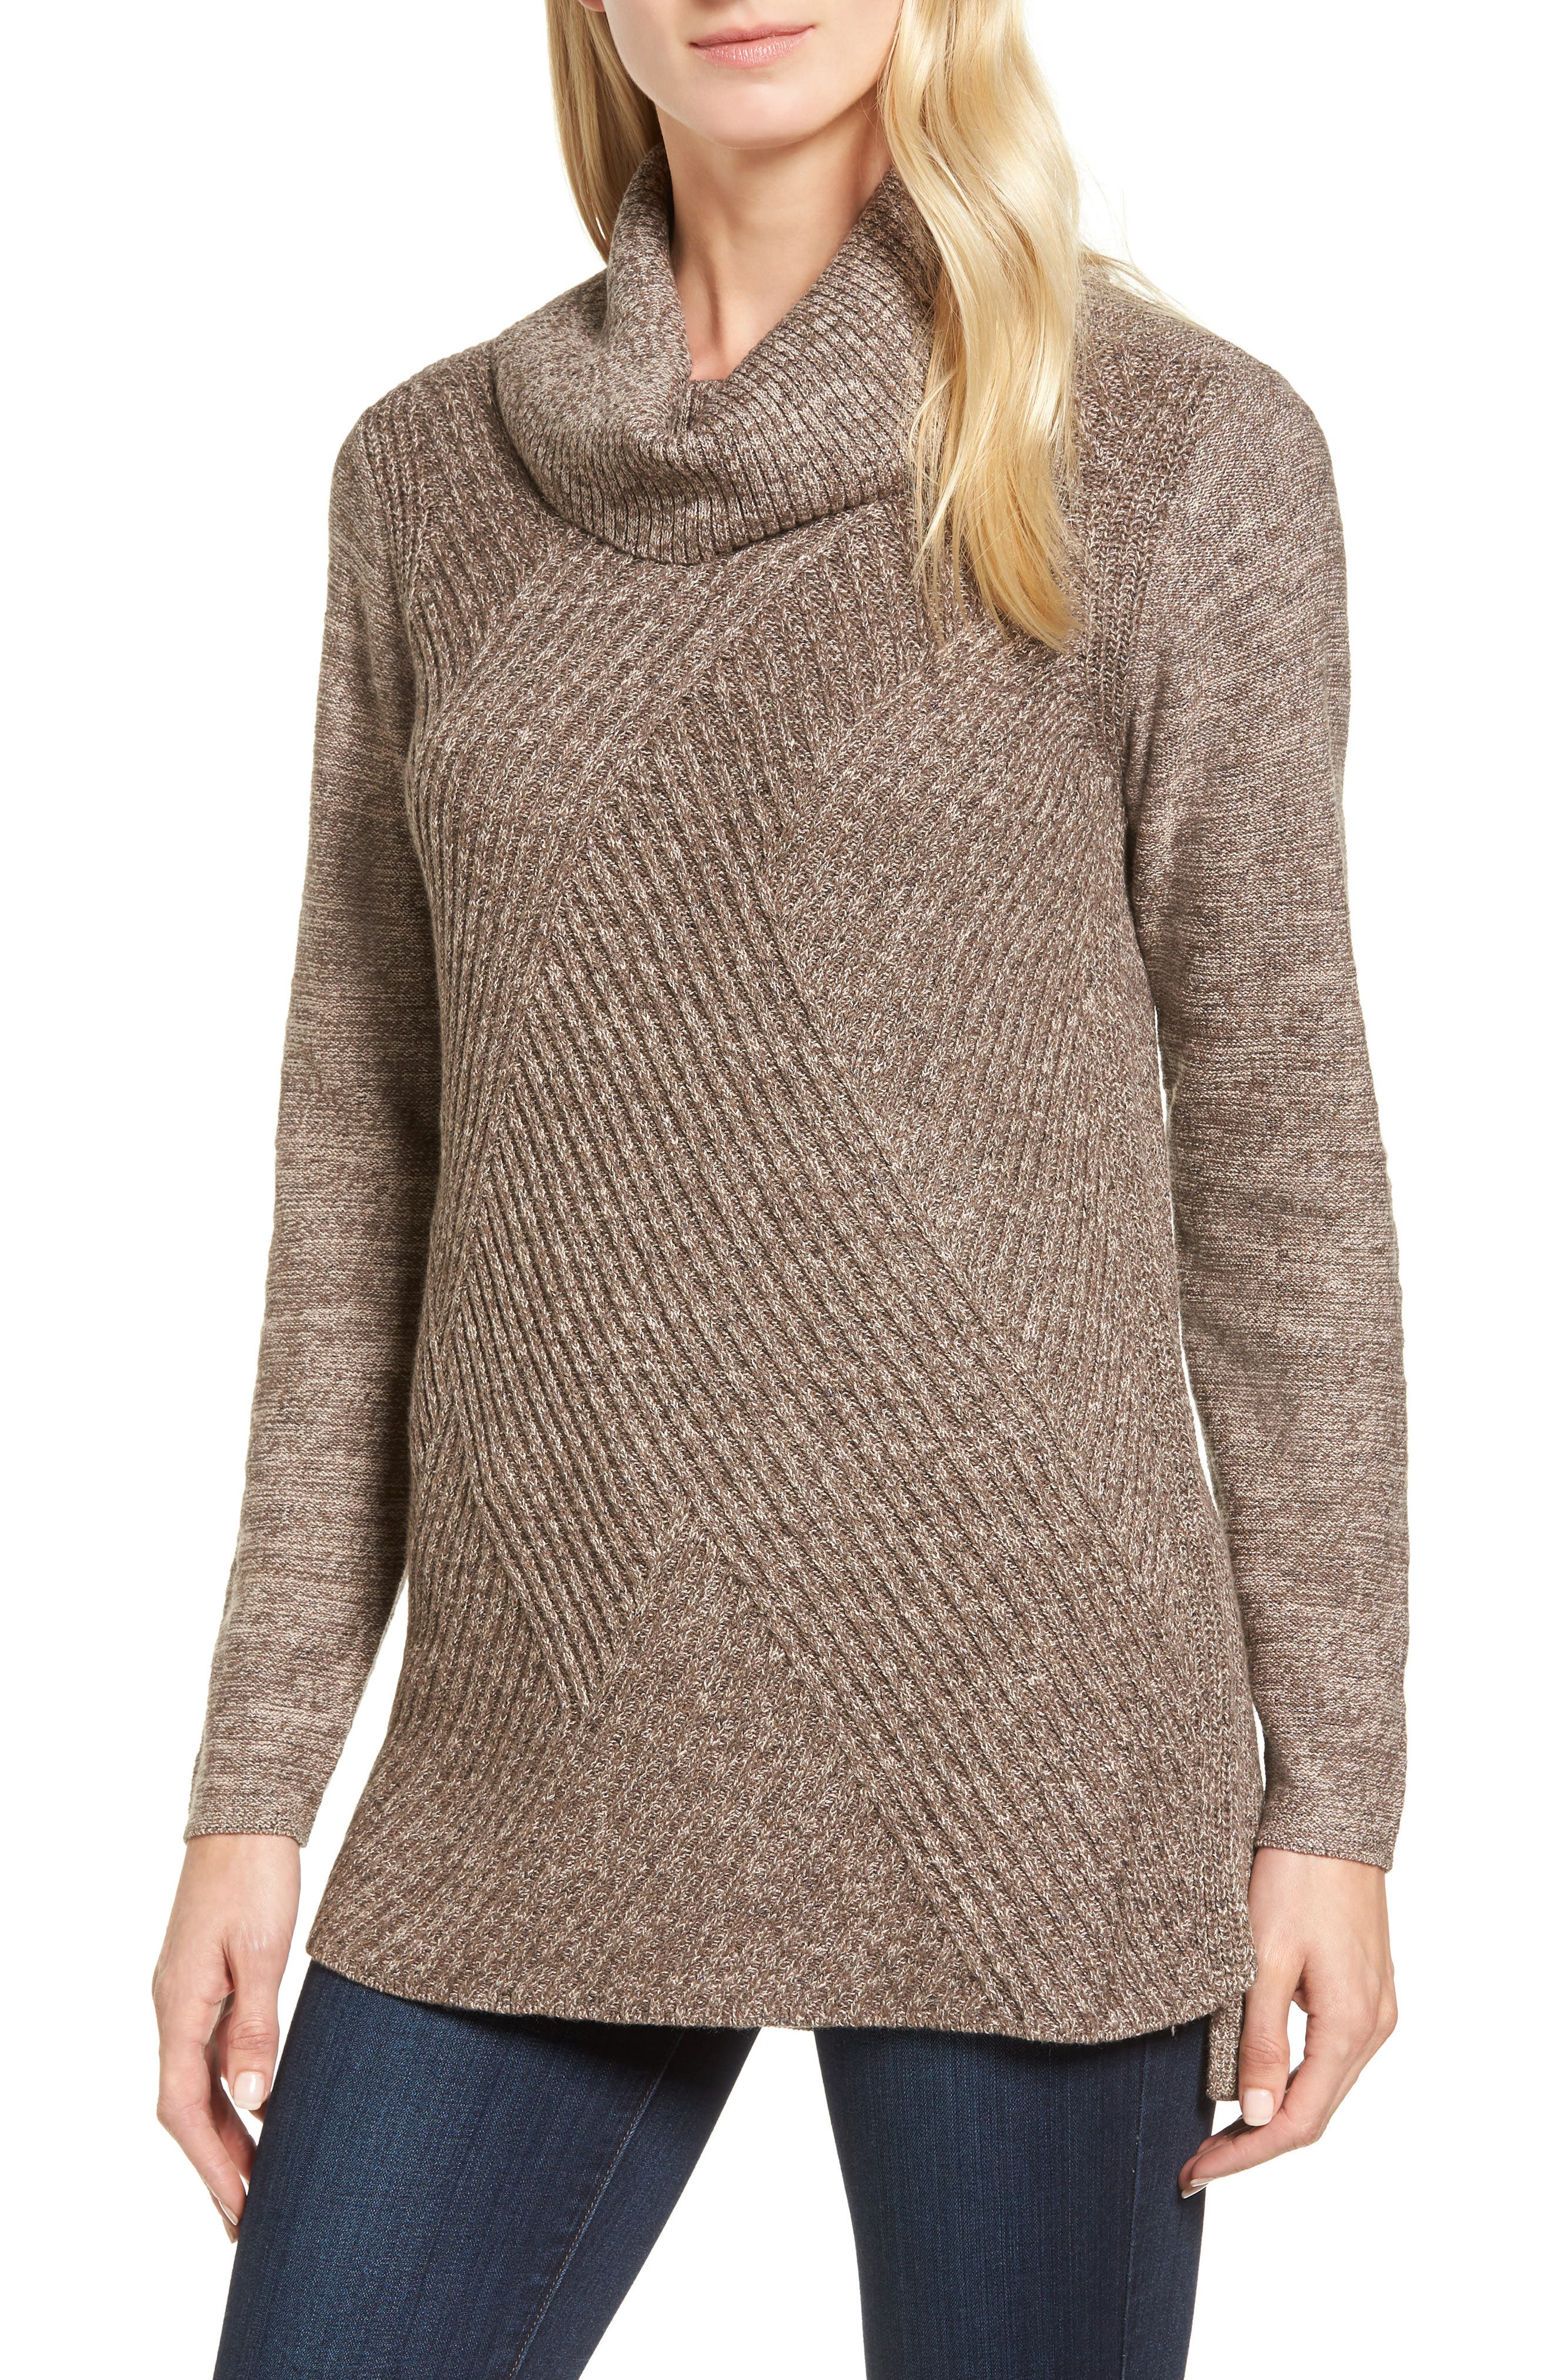 North Star Turtleneck Tunic,                             Main thumbnail 1, color,                             Kona